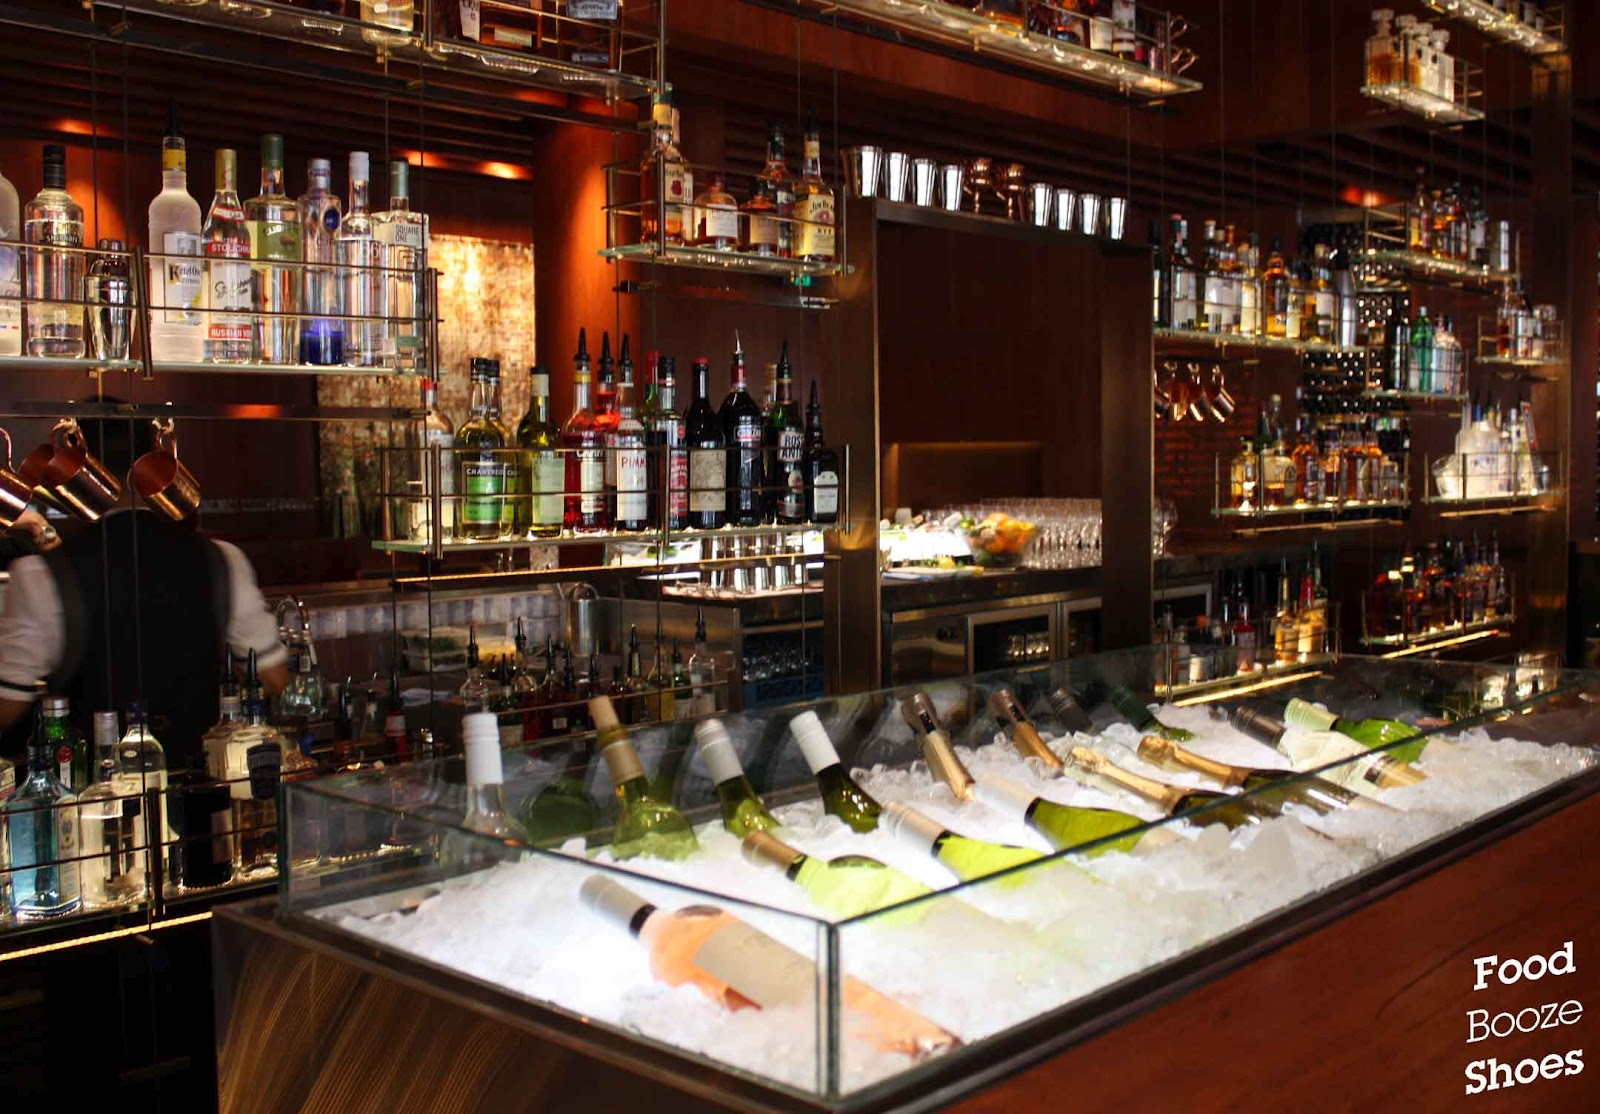 Food booze and shoes go with the grain bar four seasons for Food bar sydney